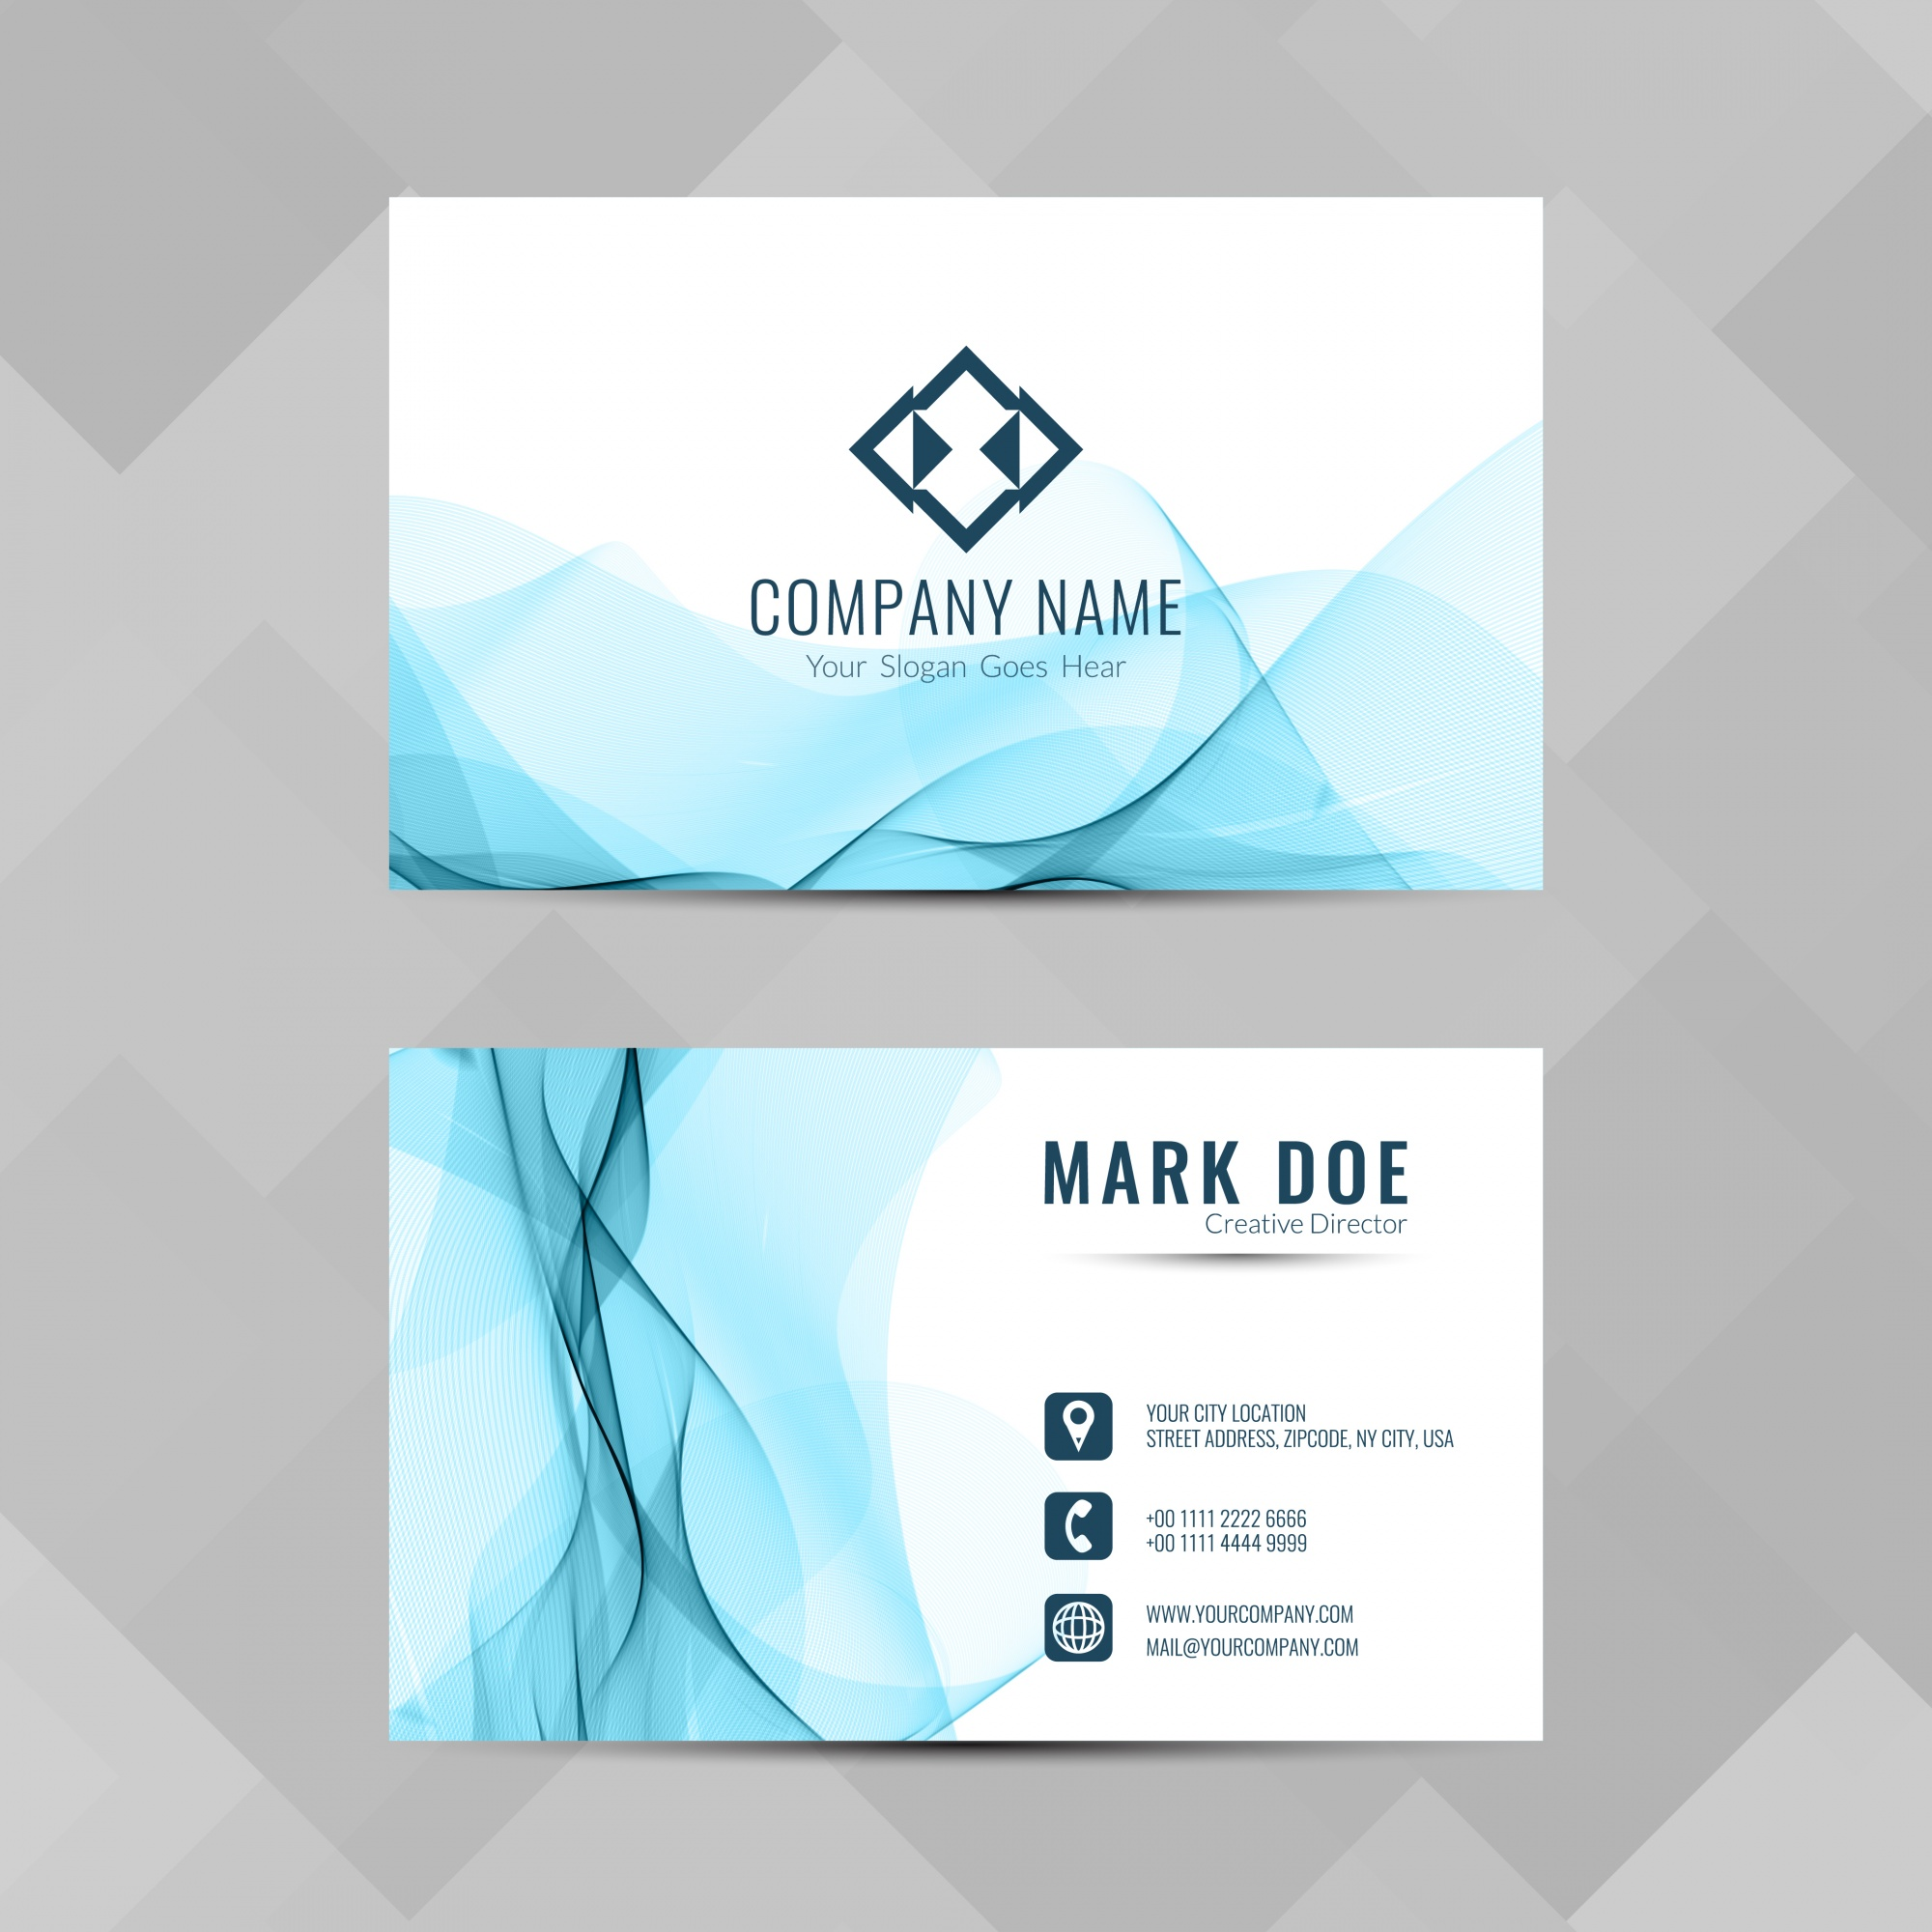 Modern business card with blue wavy shapes